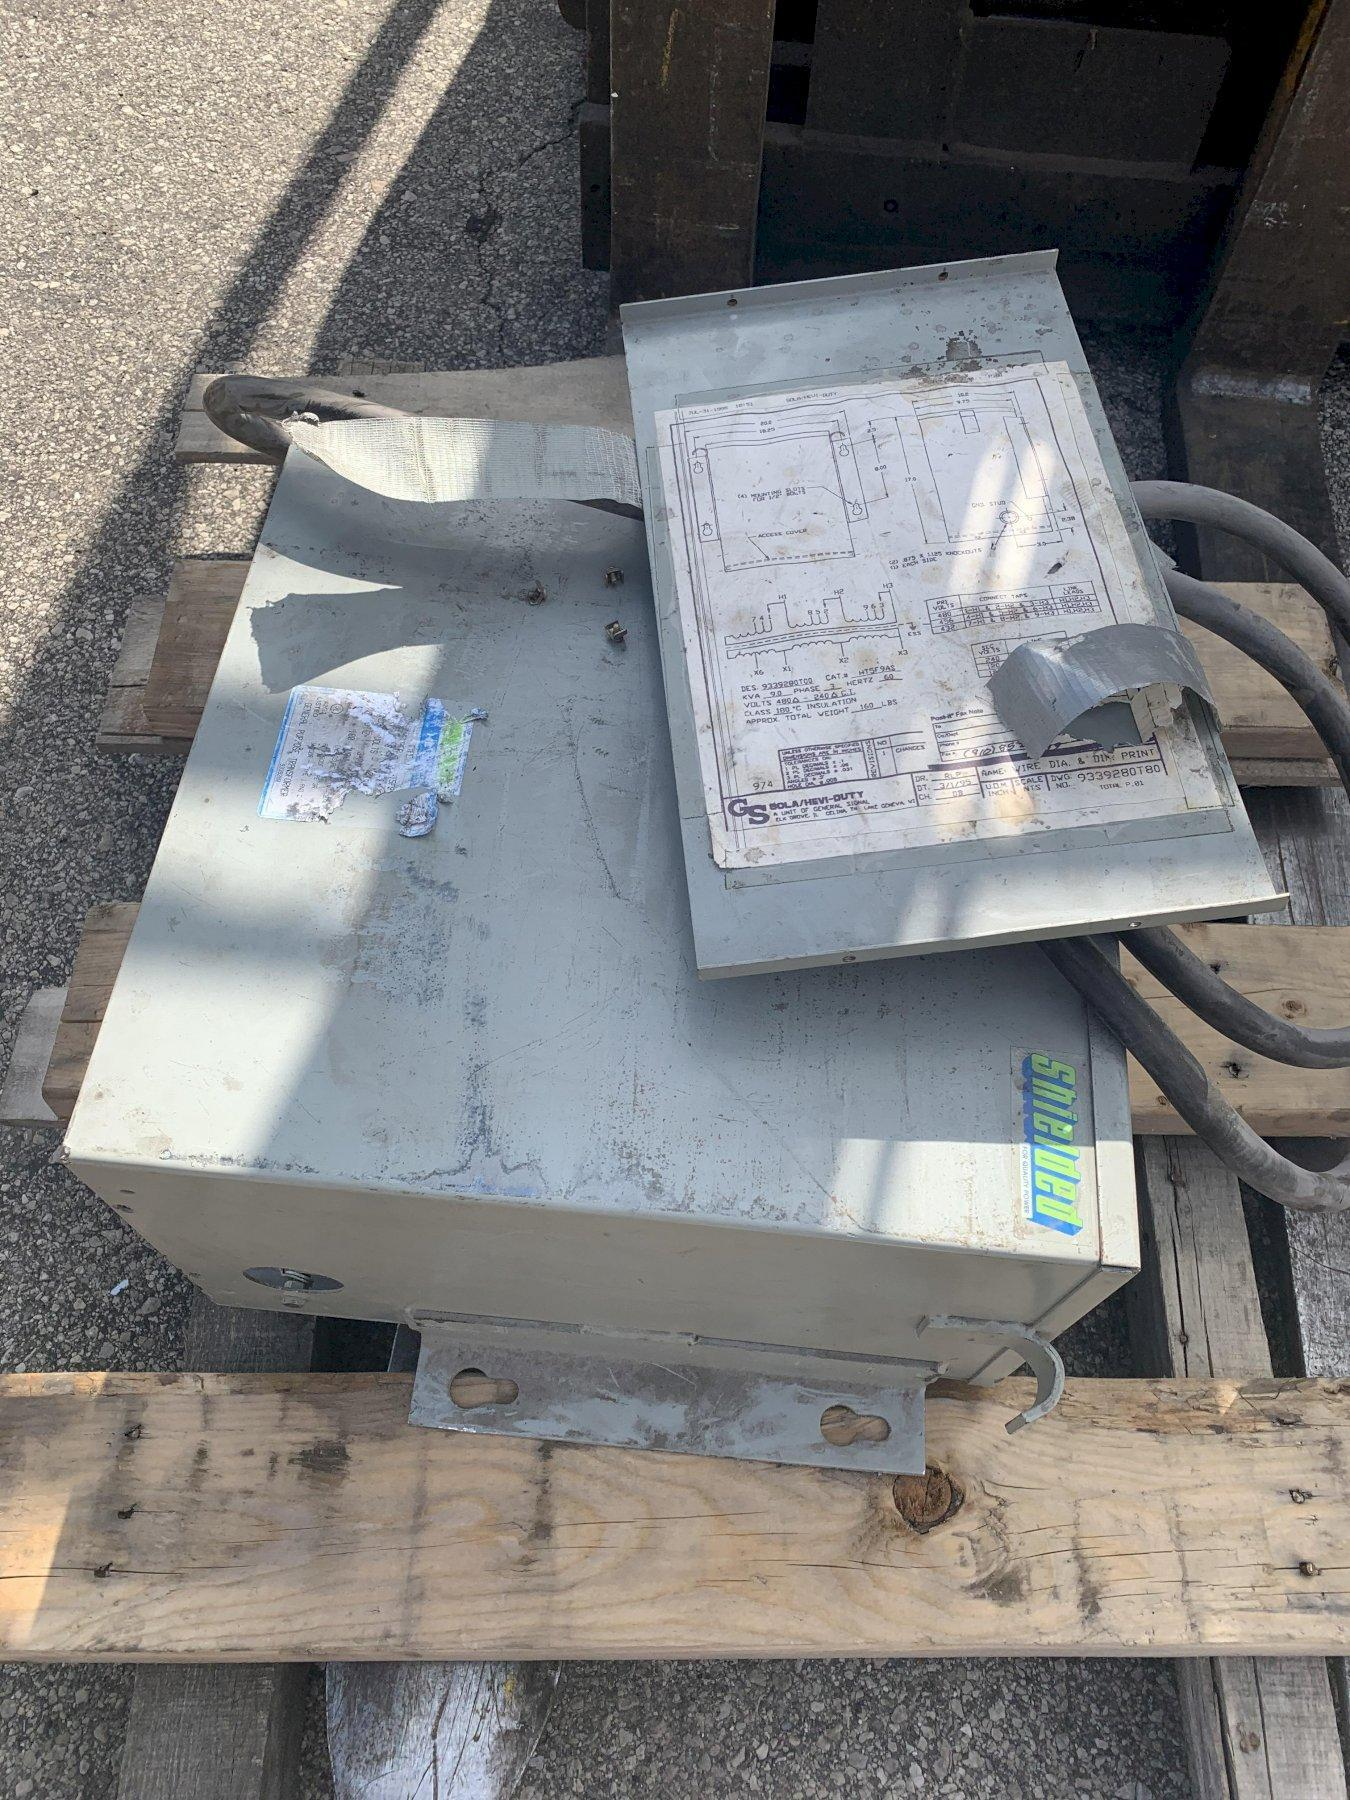 9 KVA G S SOLA 480 DELTA TO 240 DELTA ELECTRICAL TRANSFORMER: STOCK 13436